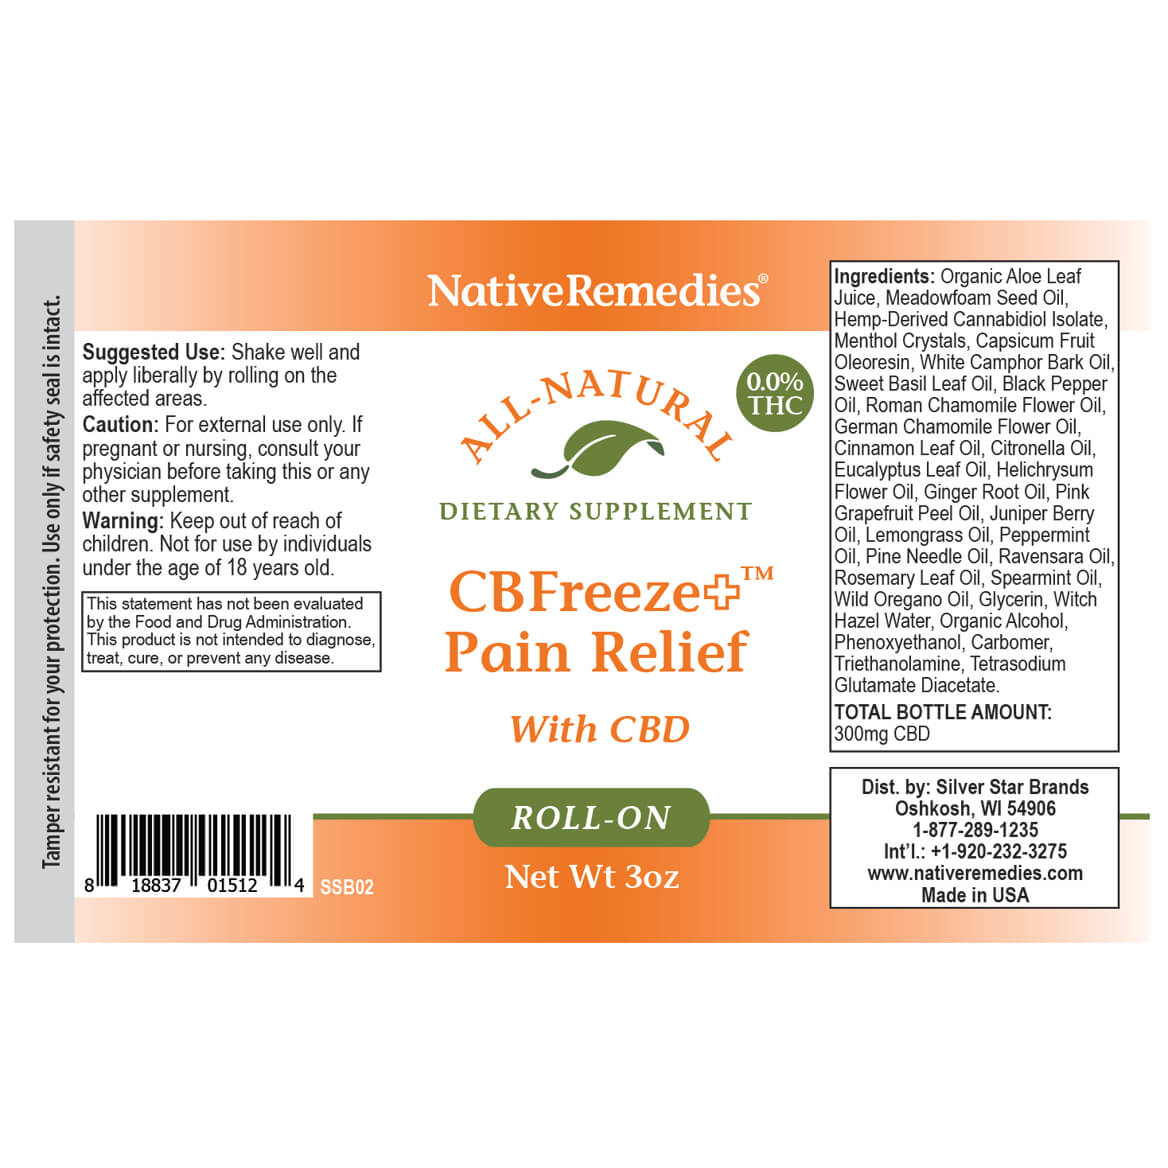 NativeRemedies® CBFreeze+ Pain Relief Roll-on-369289